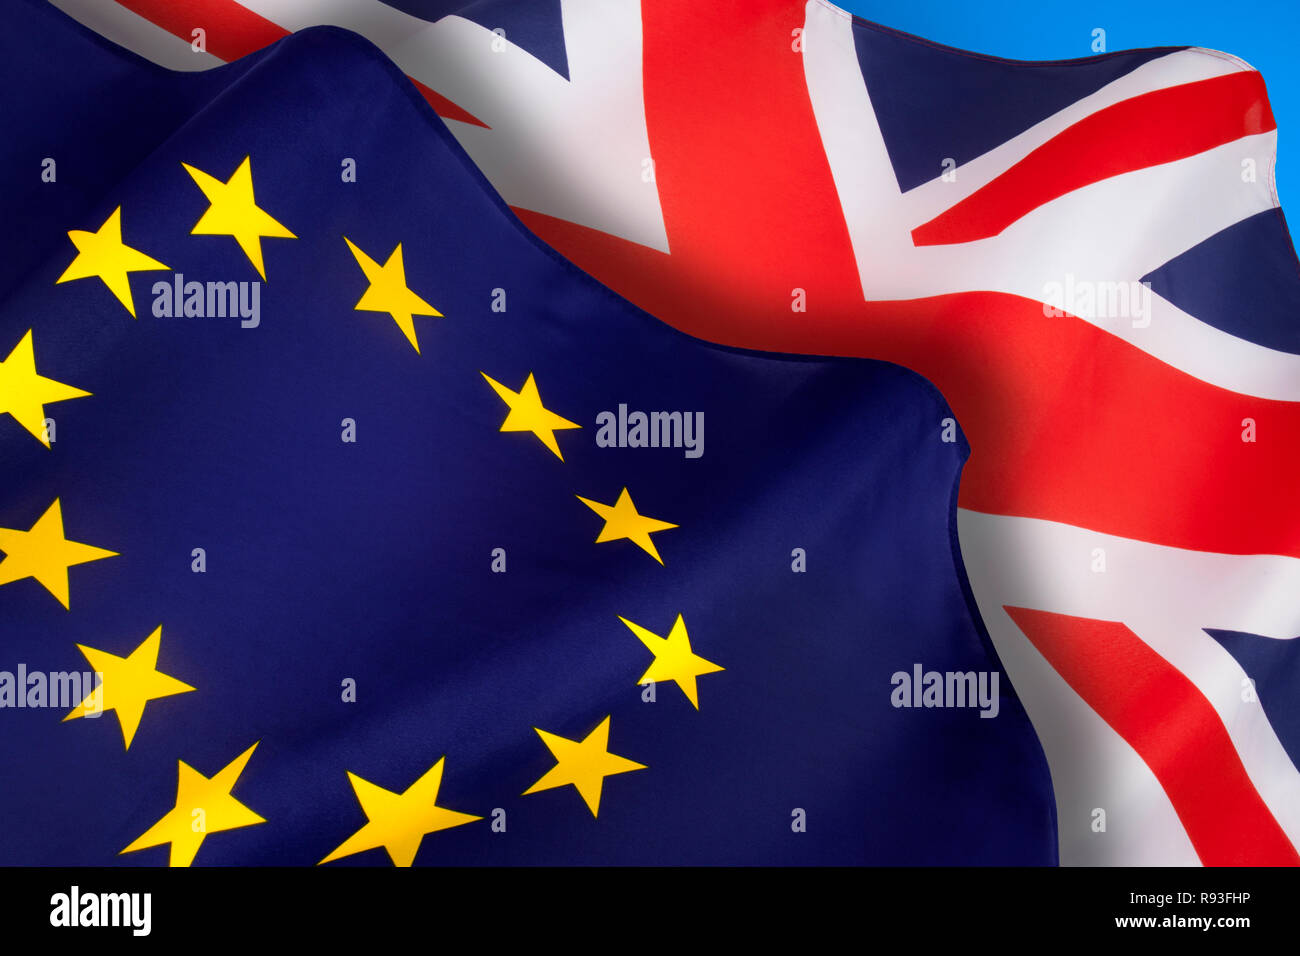 The flags of the United Kingdom of Great Britain and Northern Ireland and the European Union. Brexit. - Stock Image